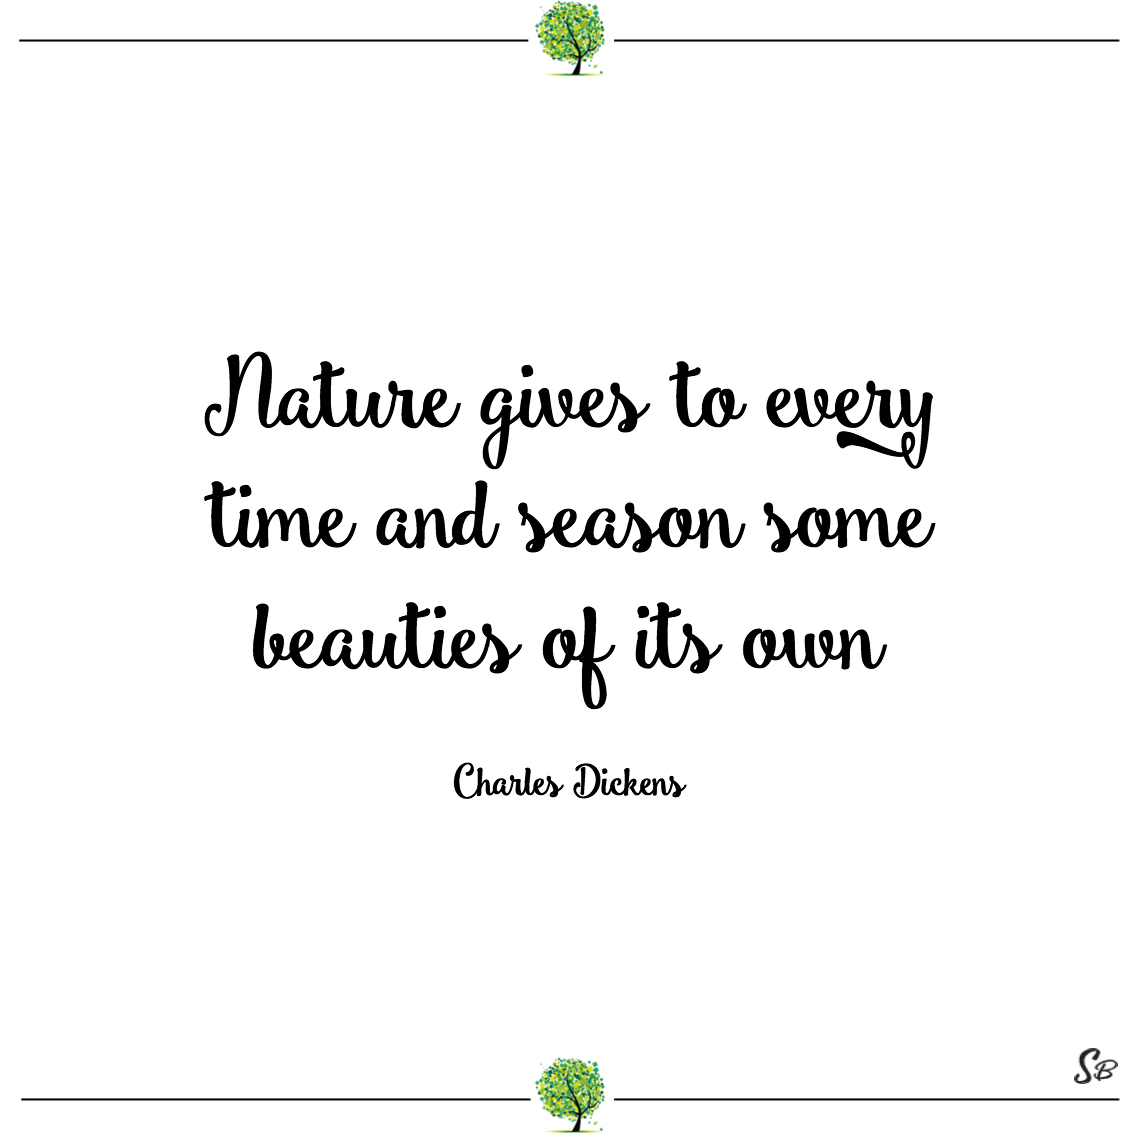 Nature gives to every time and season some beauties of its own charles dickens